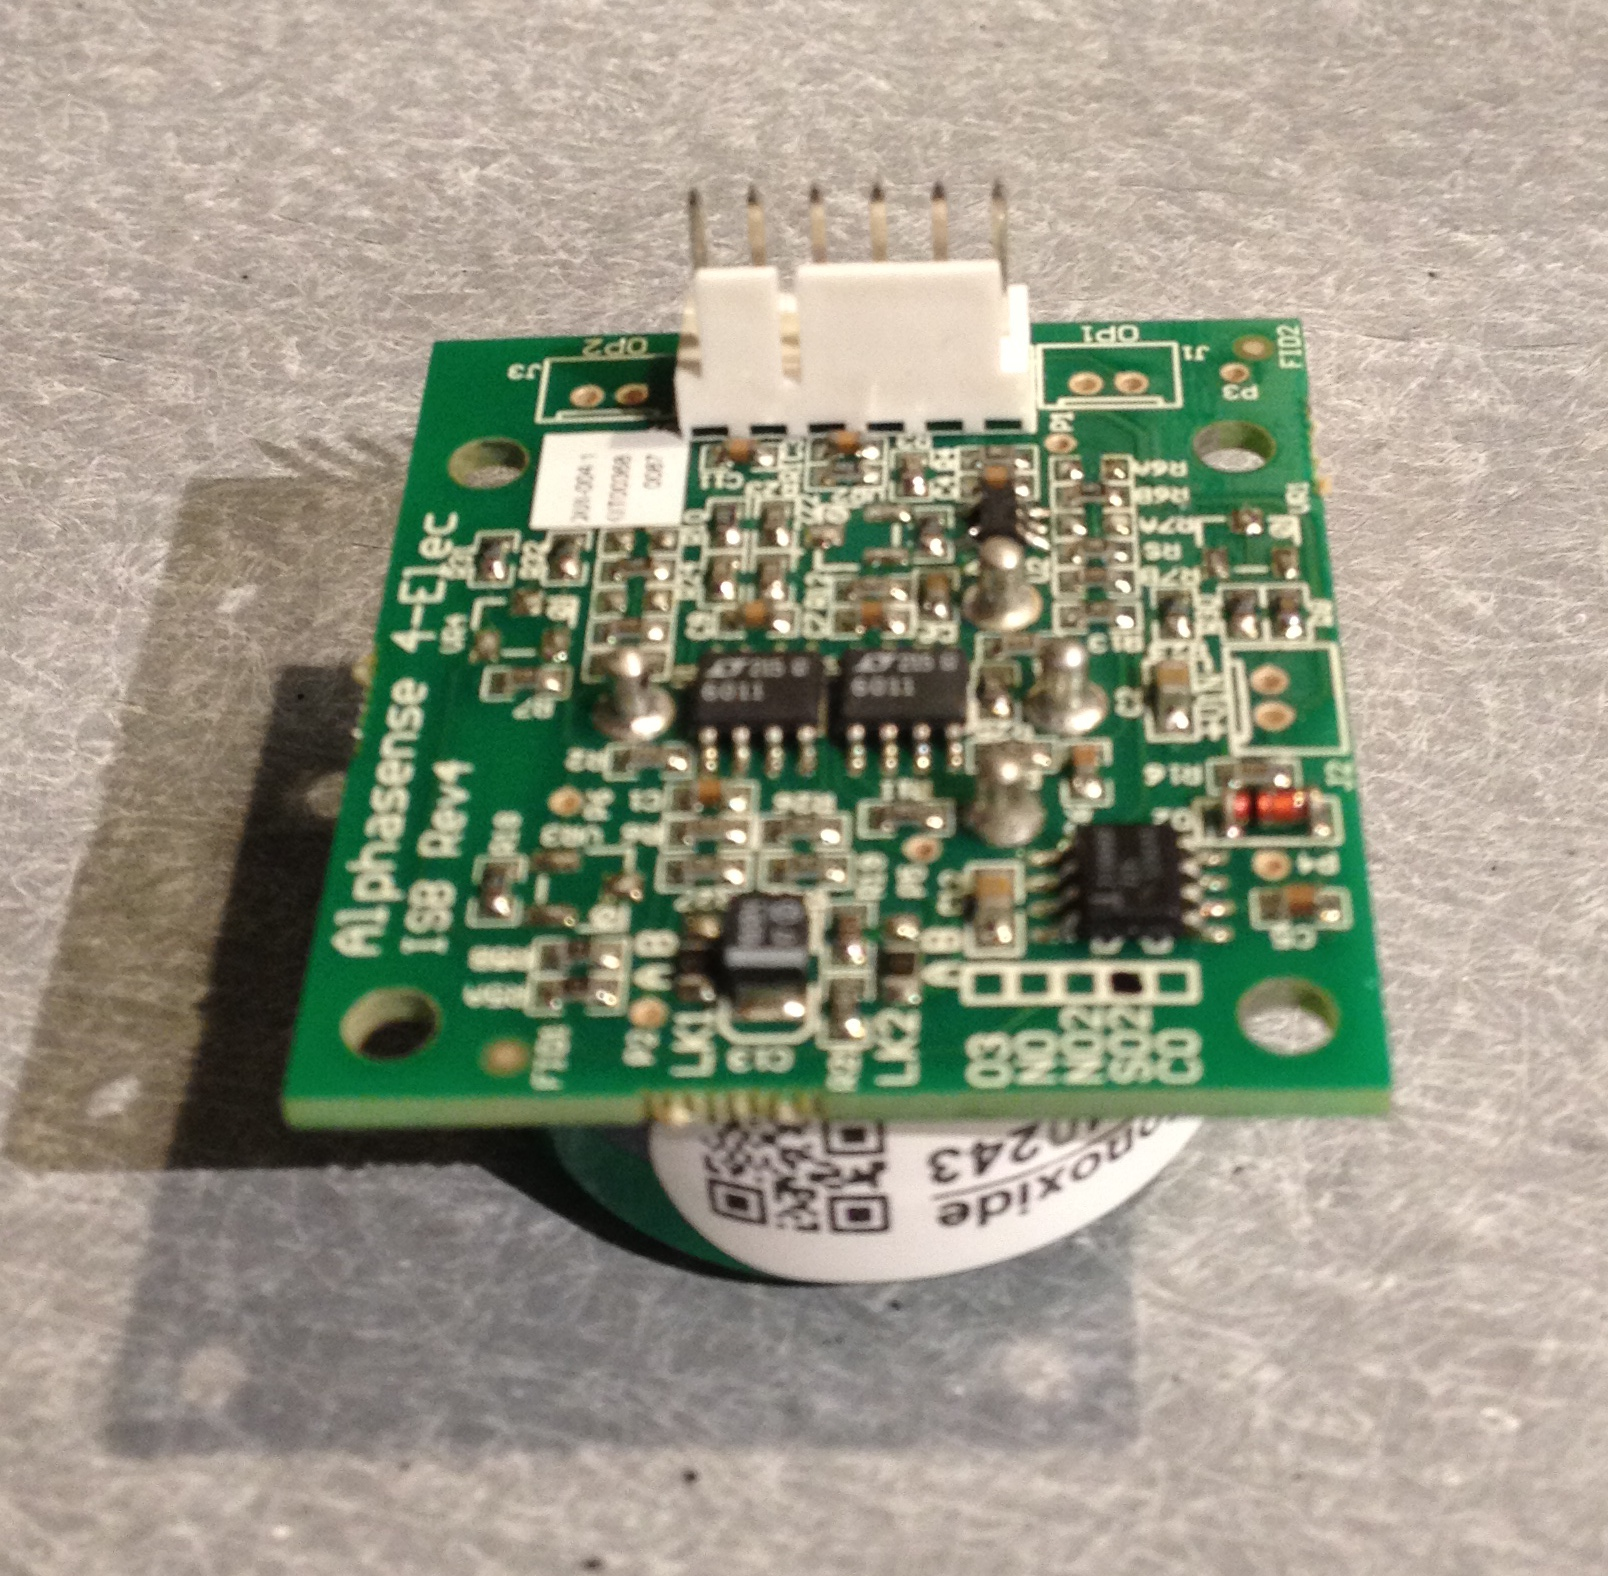 Public Lab Smart Sensor Board For Electrochemical Gas Sensors Where To Buy Circuit Boards But Cant I Just A